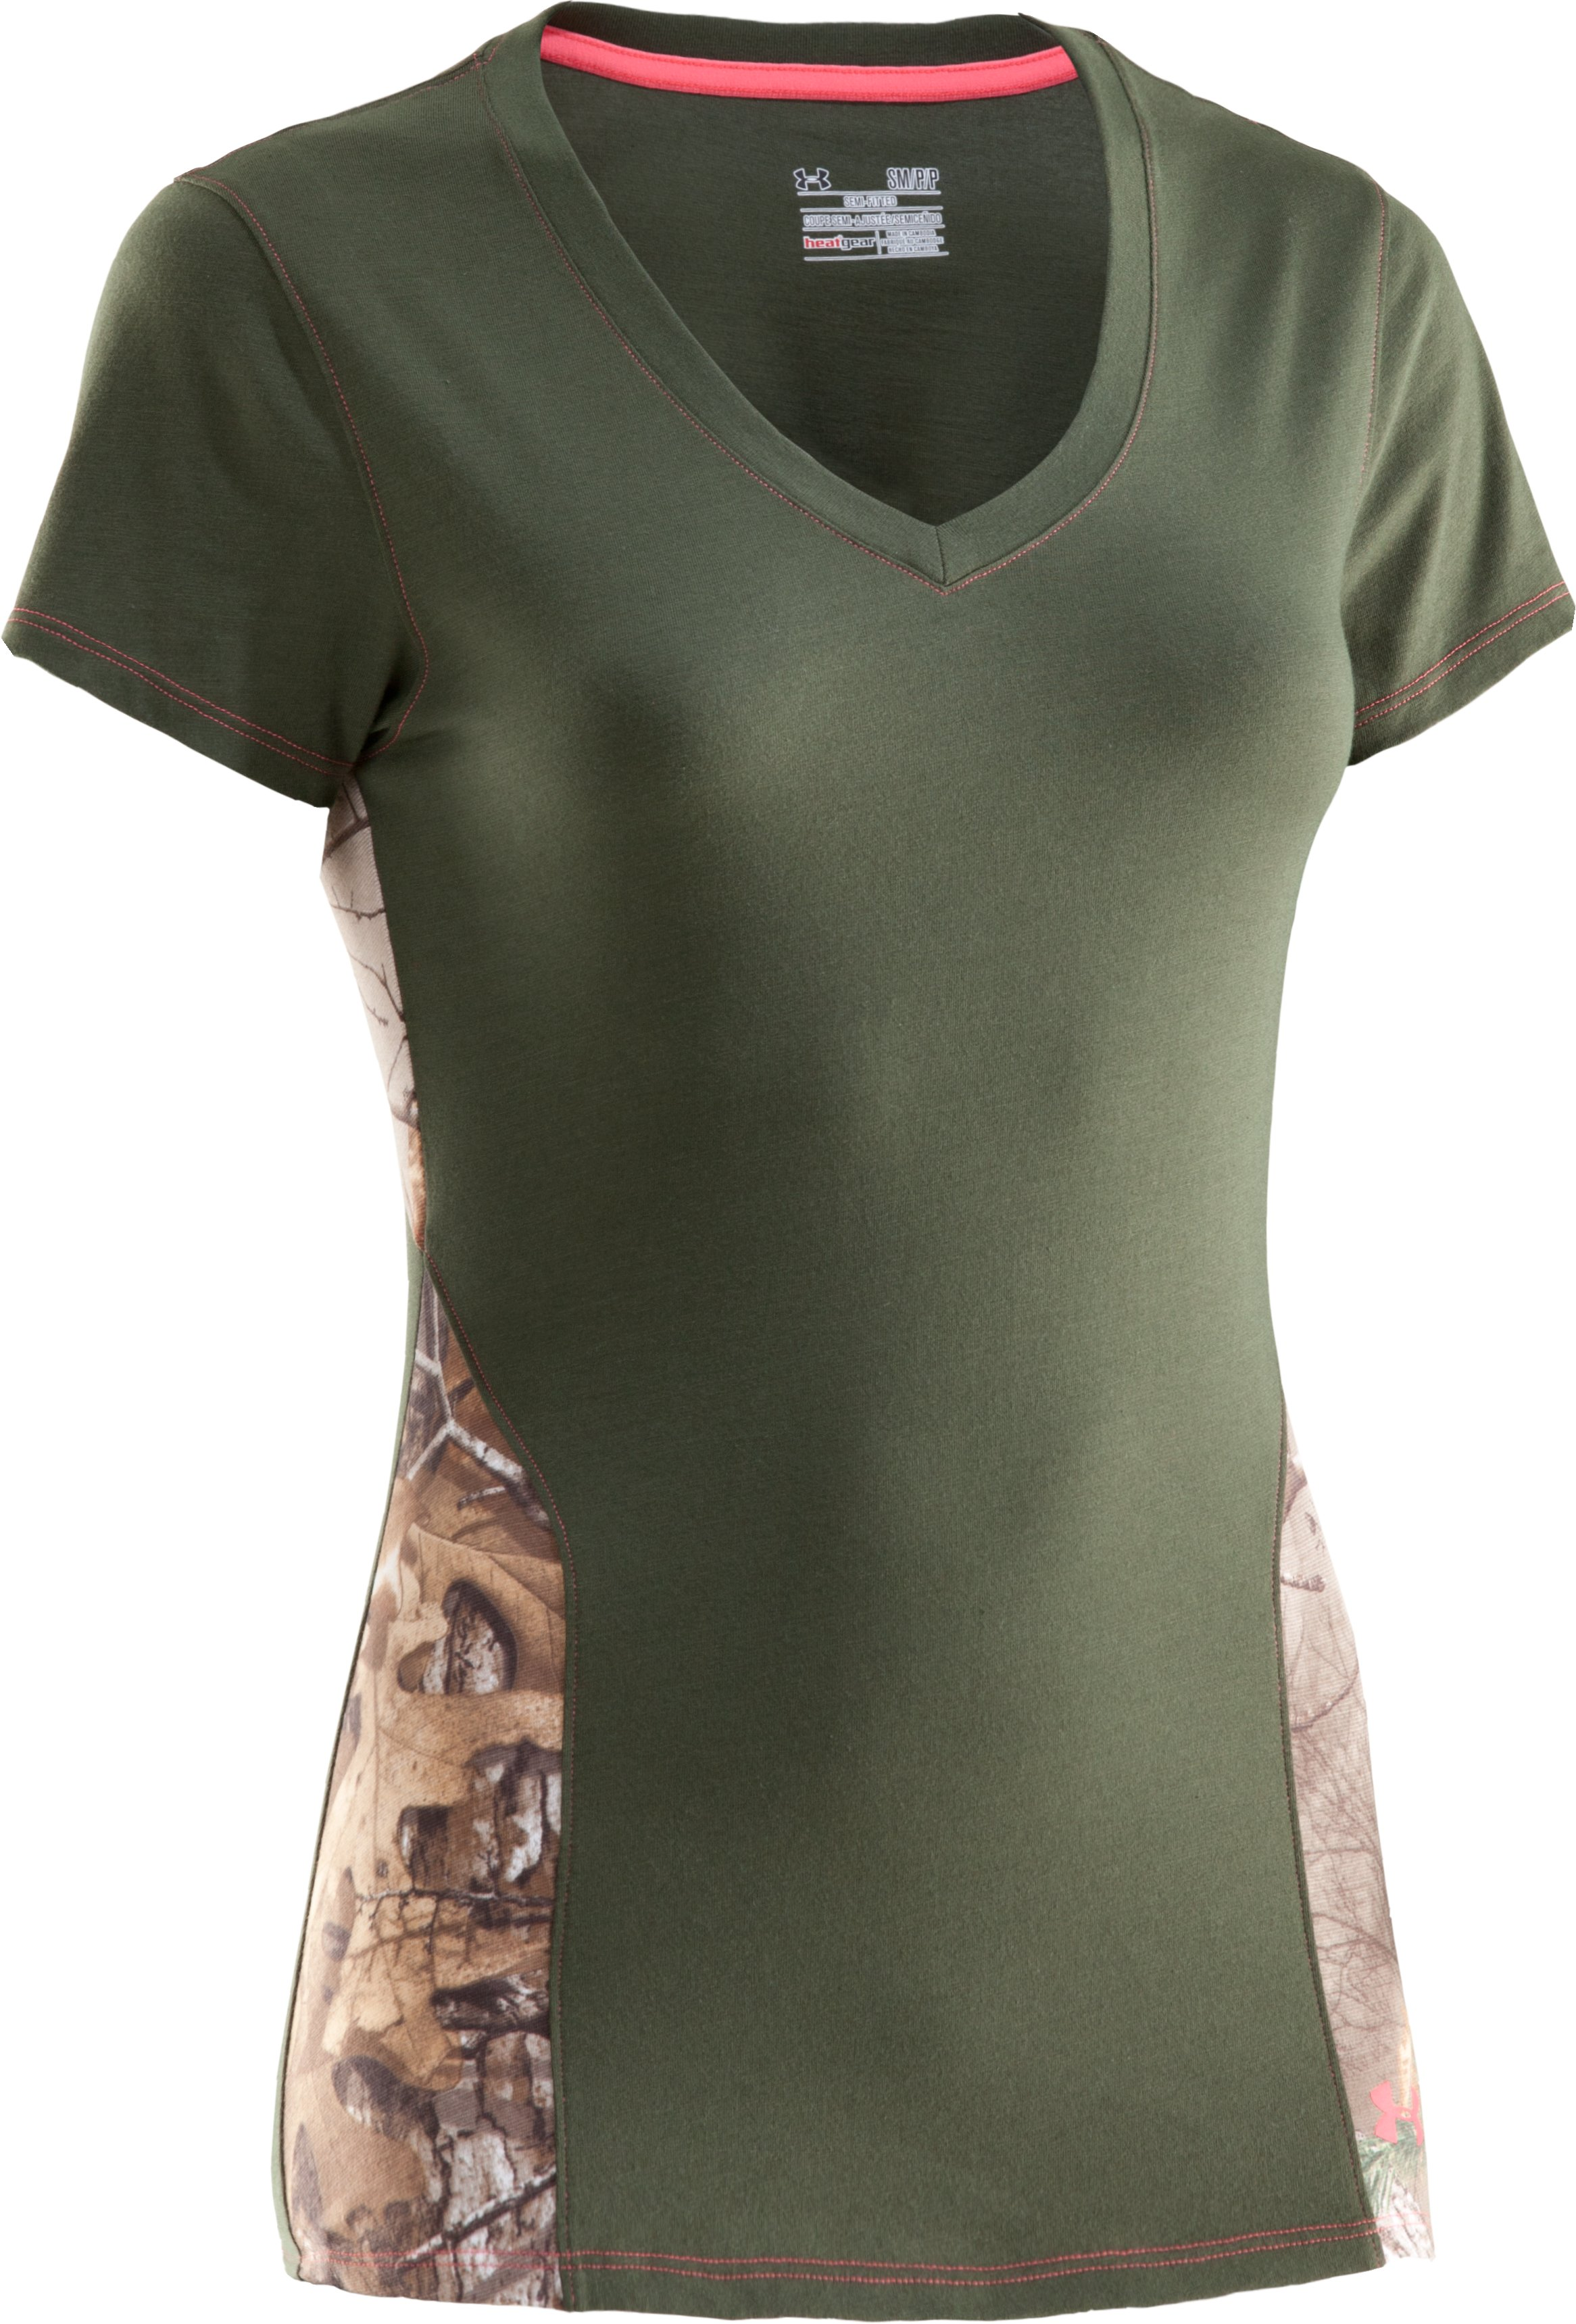 Women's Charged Cotton® Camo V-Neck, Rifle Green